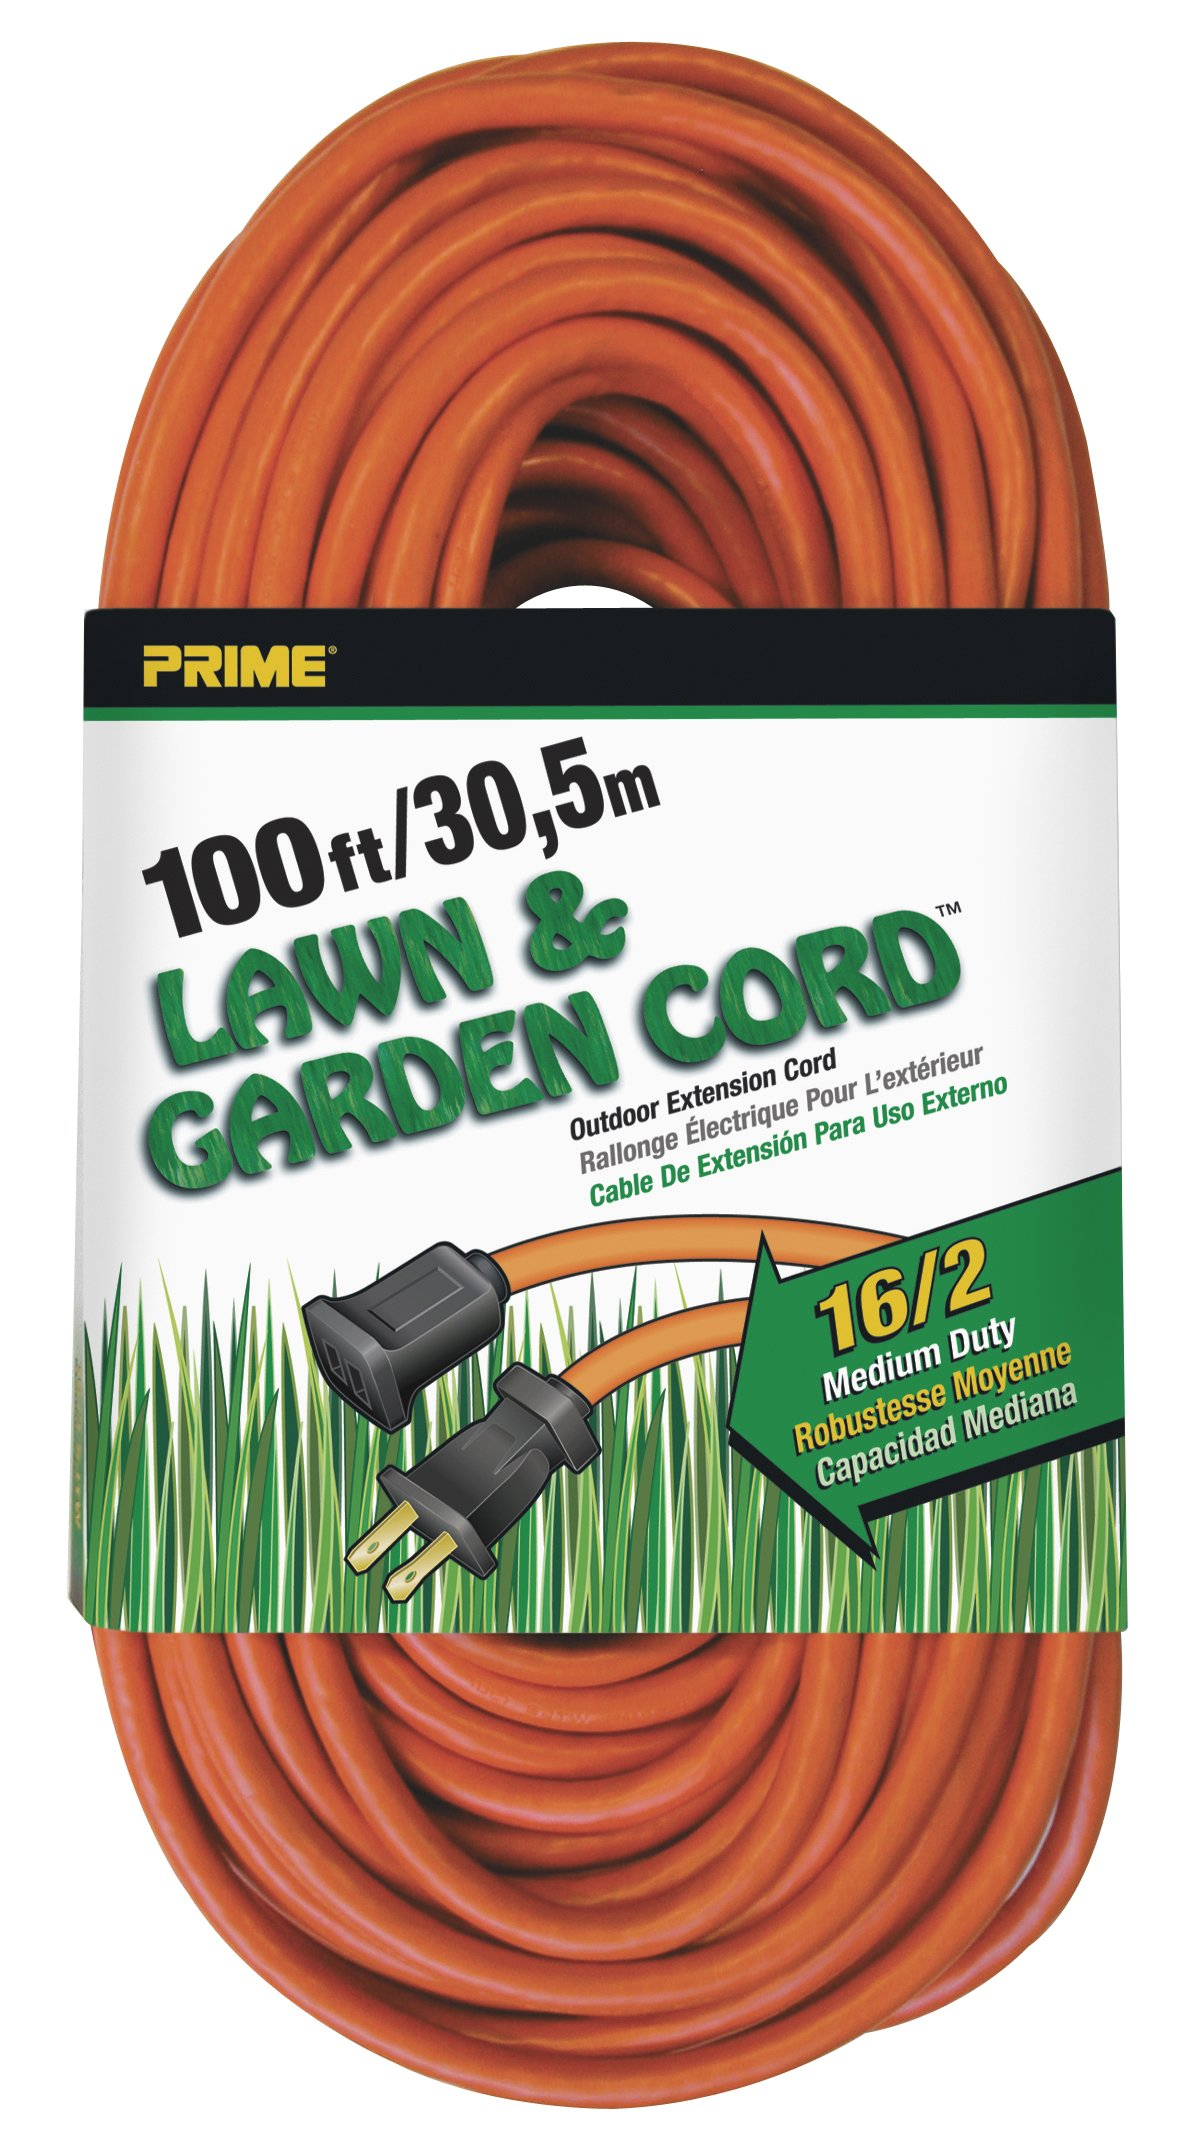 Prime Wire & Cable EC481635 100-Foot 16/2 SJTW Lawn and Garden Outdoor Extension Cord, Orange